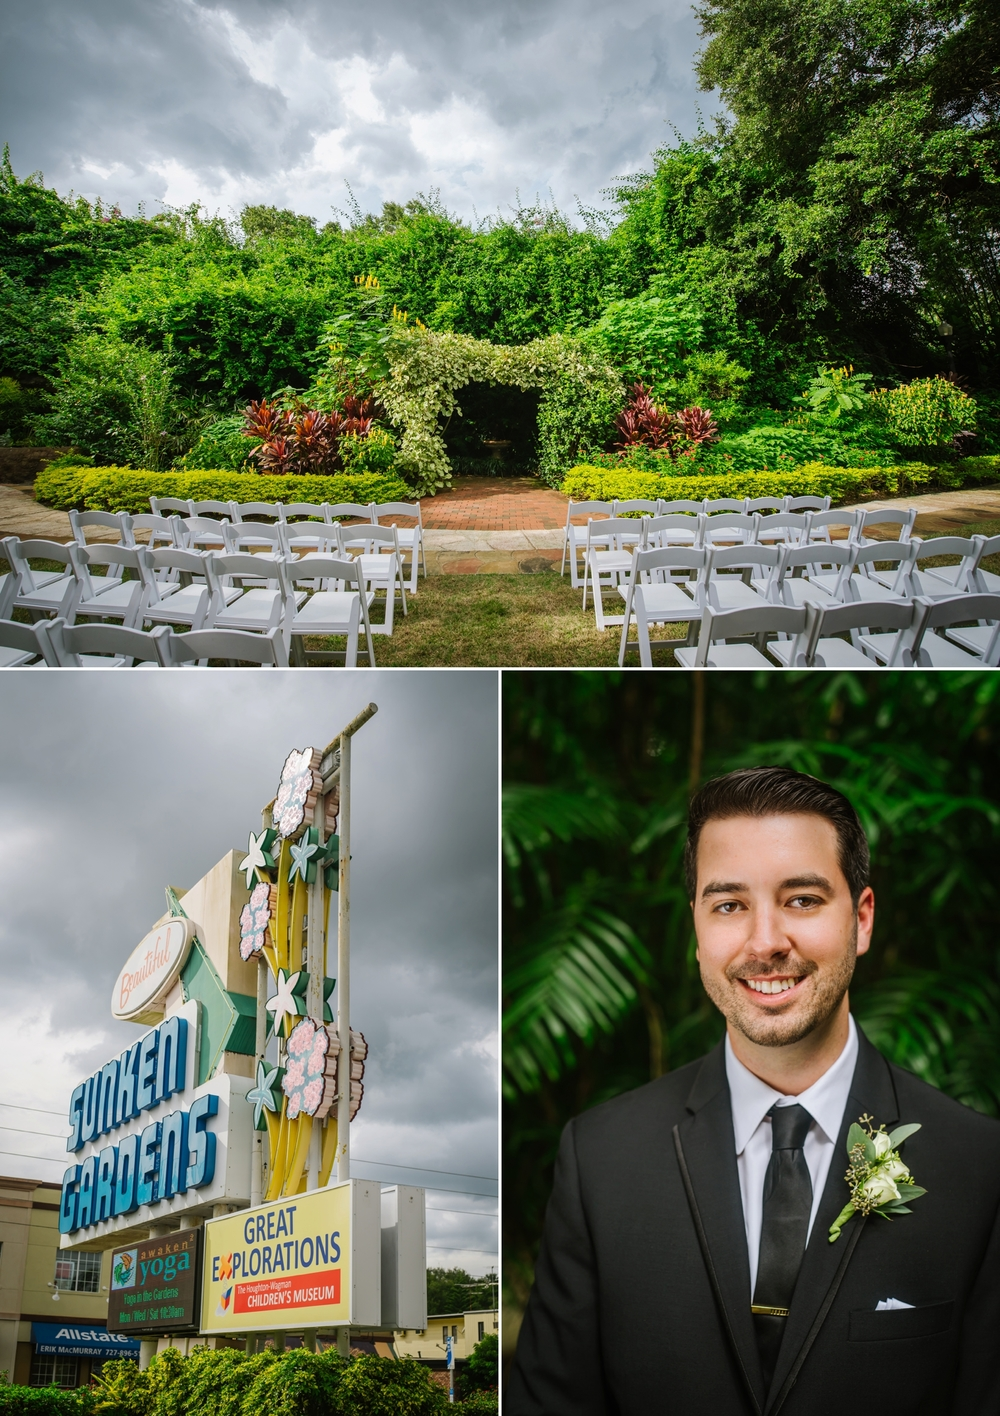 st-pete-hotel-zamora-sunken-gardens-rooftop-wedding-photography_0005.jpg